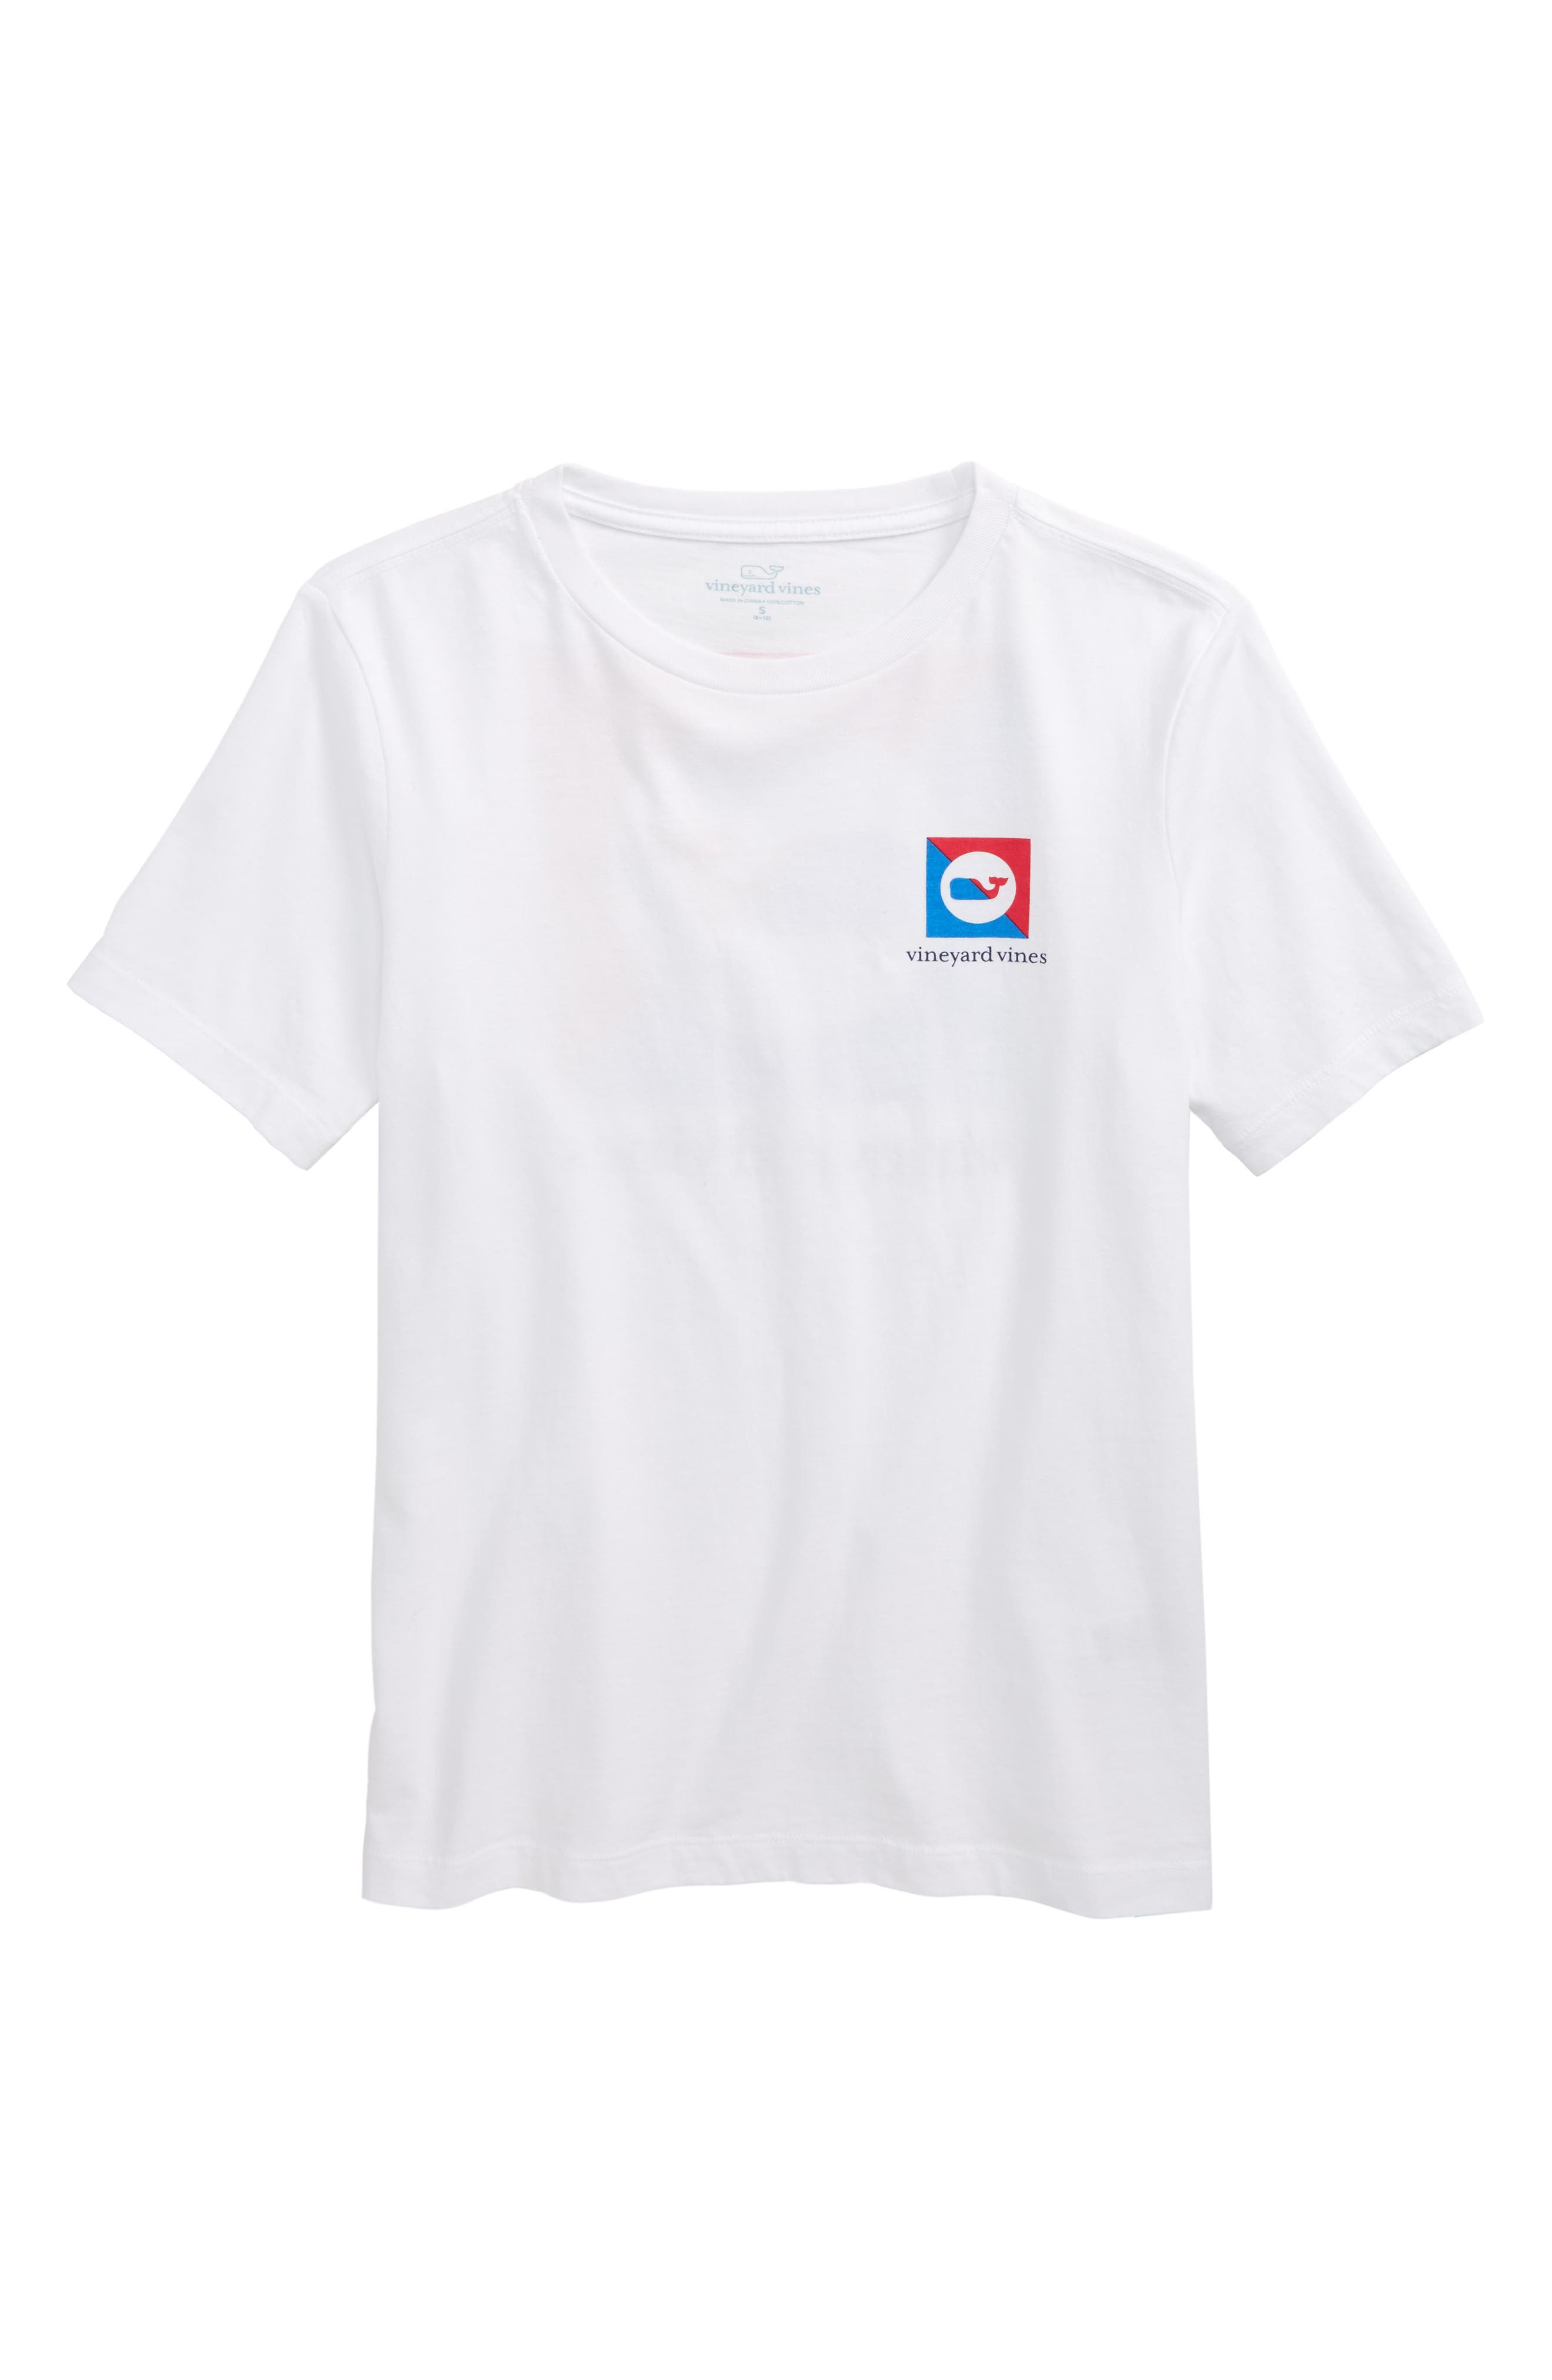 Alternate Image 1 Selected - vineyard vines Burgee Logo Graphic T-Shirt (Big Boys)